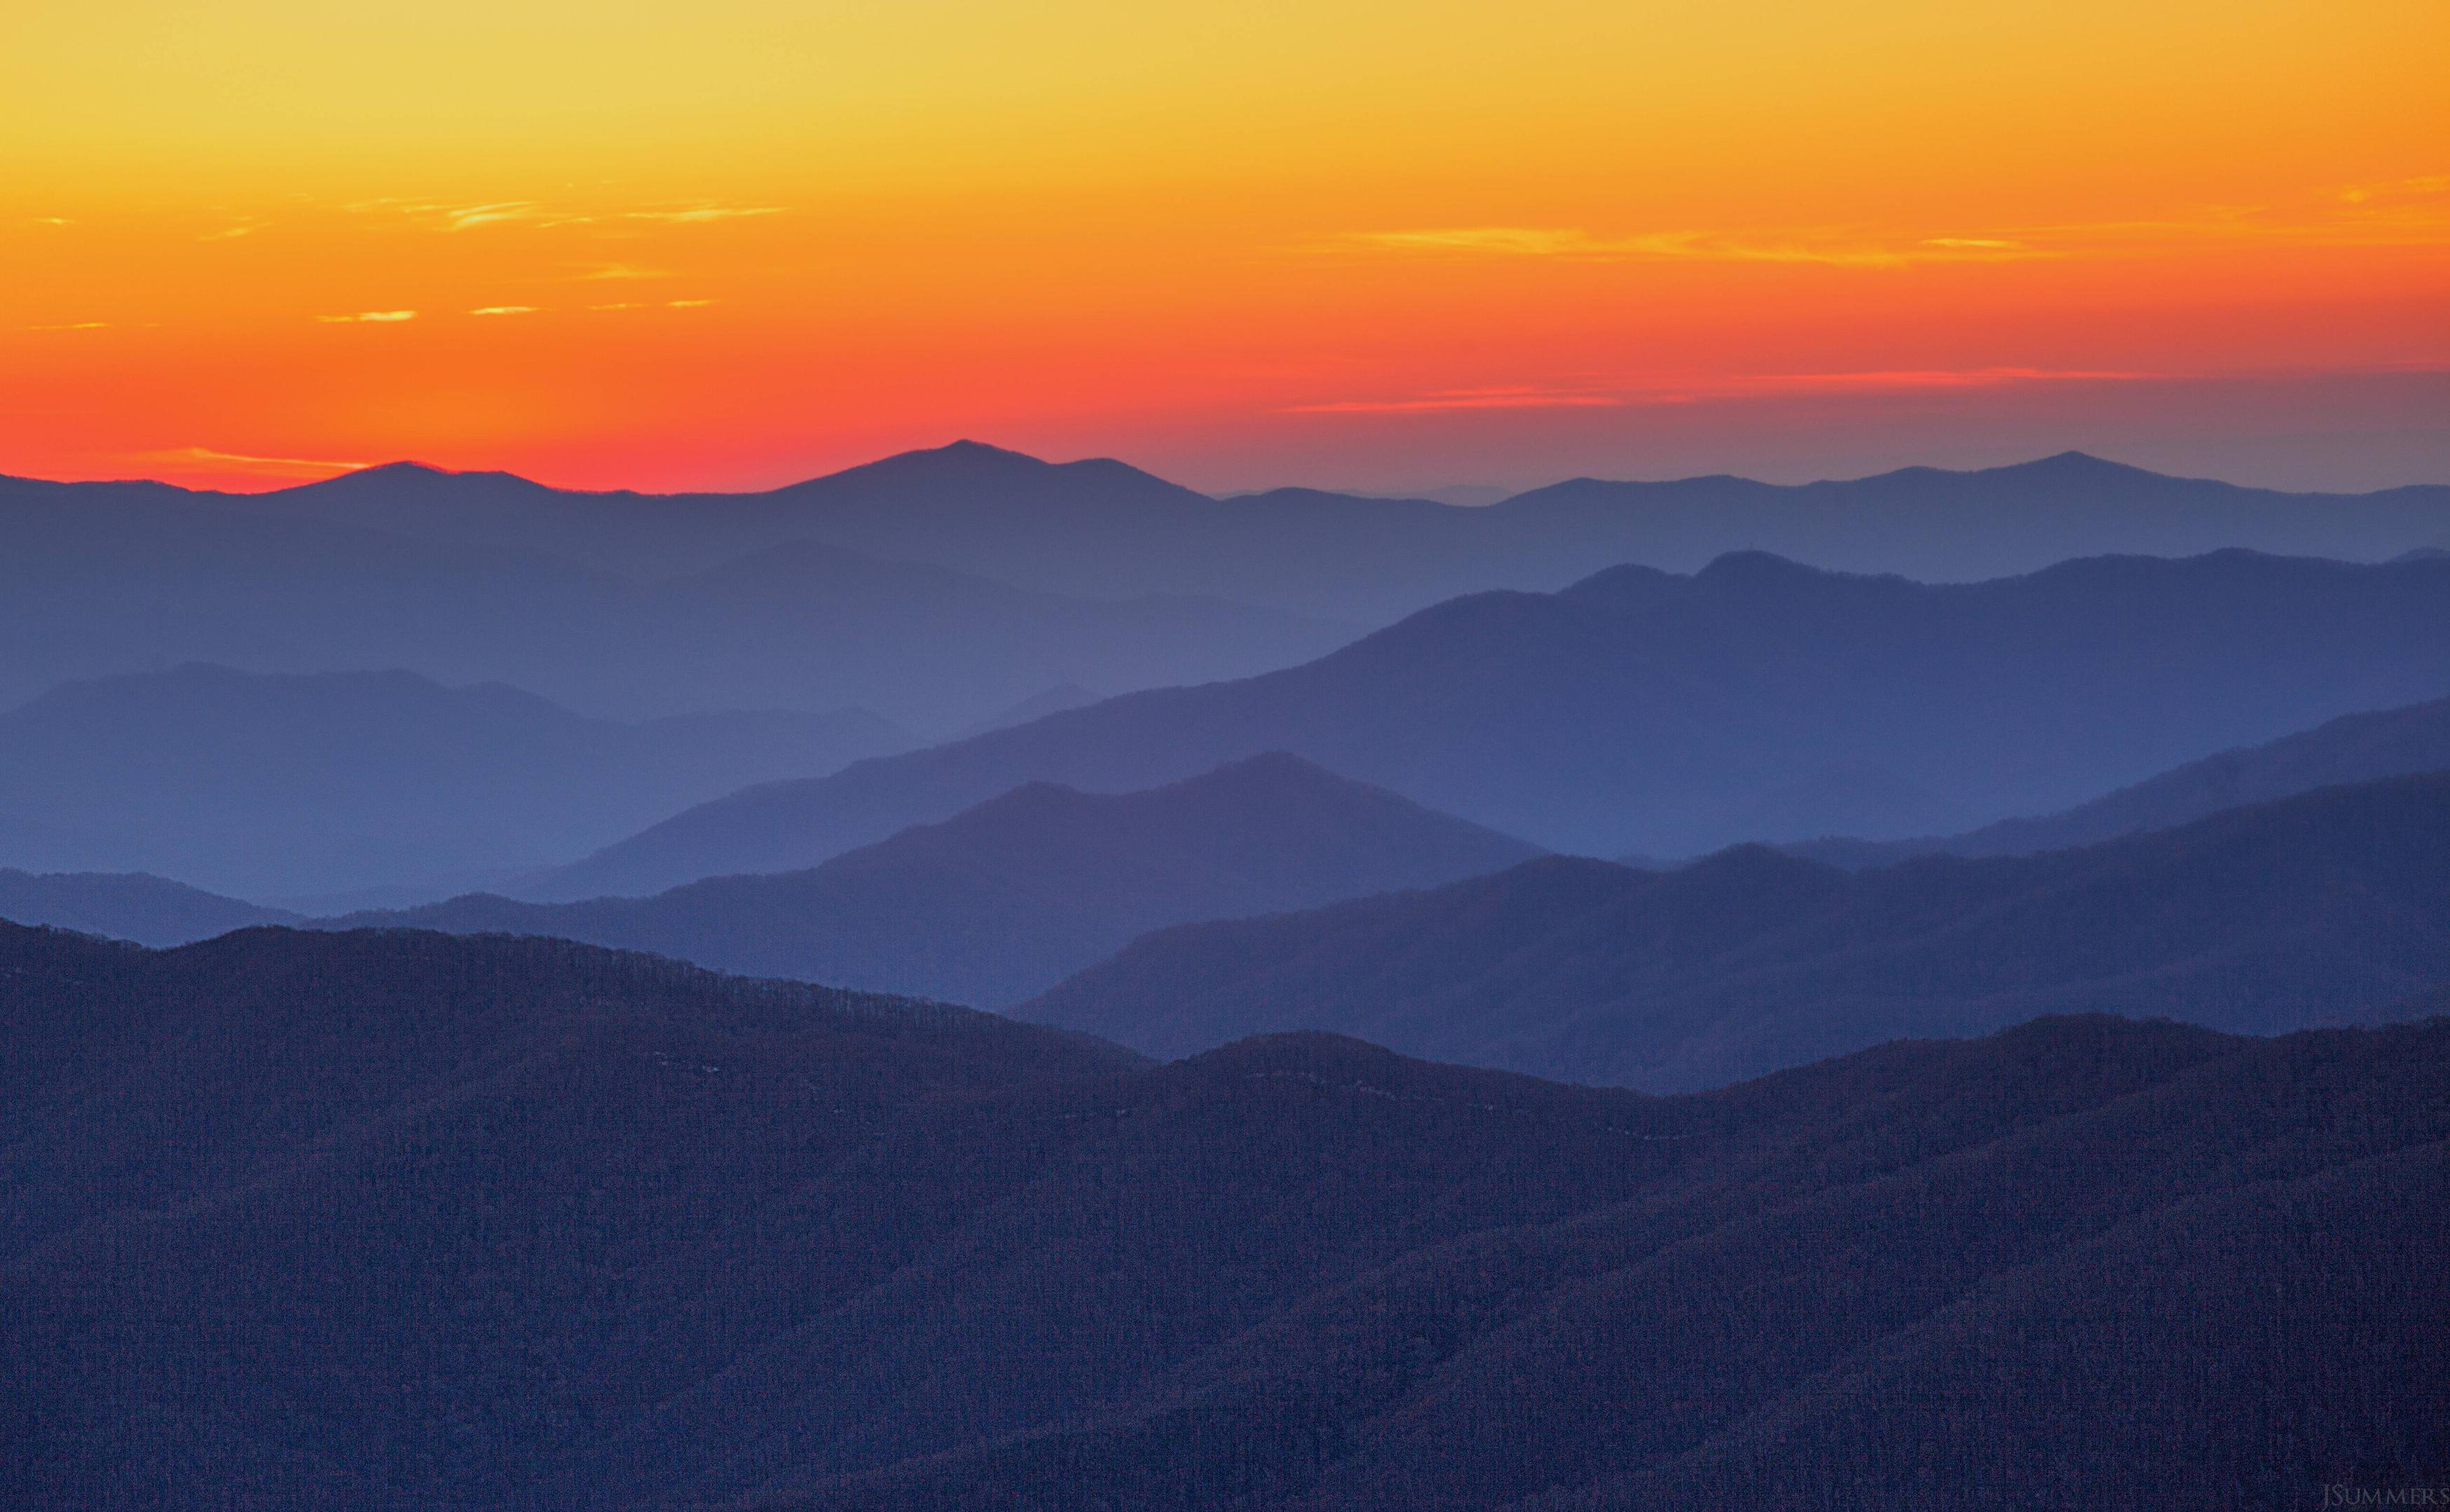 Free photo: Blue ridge mountains